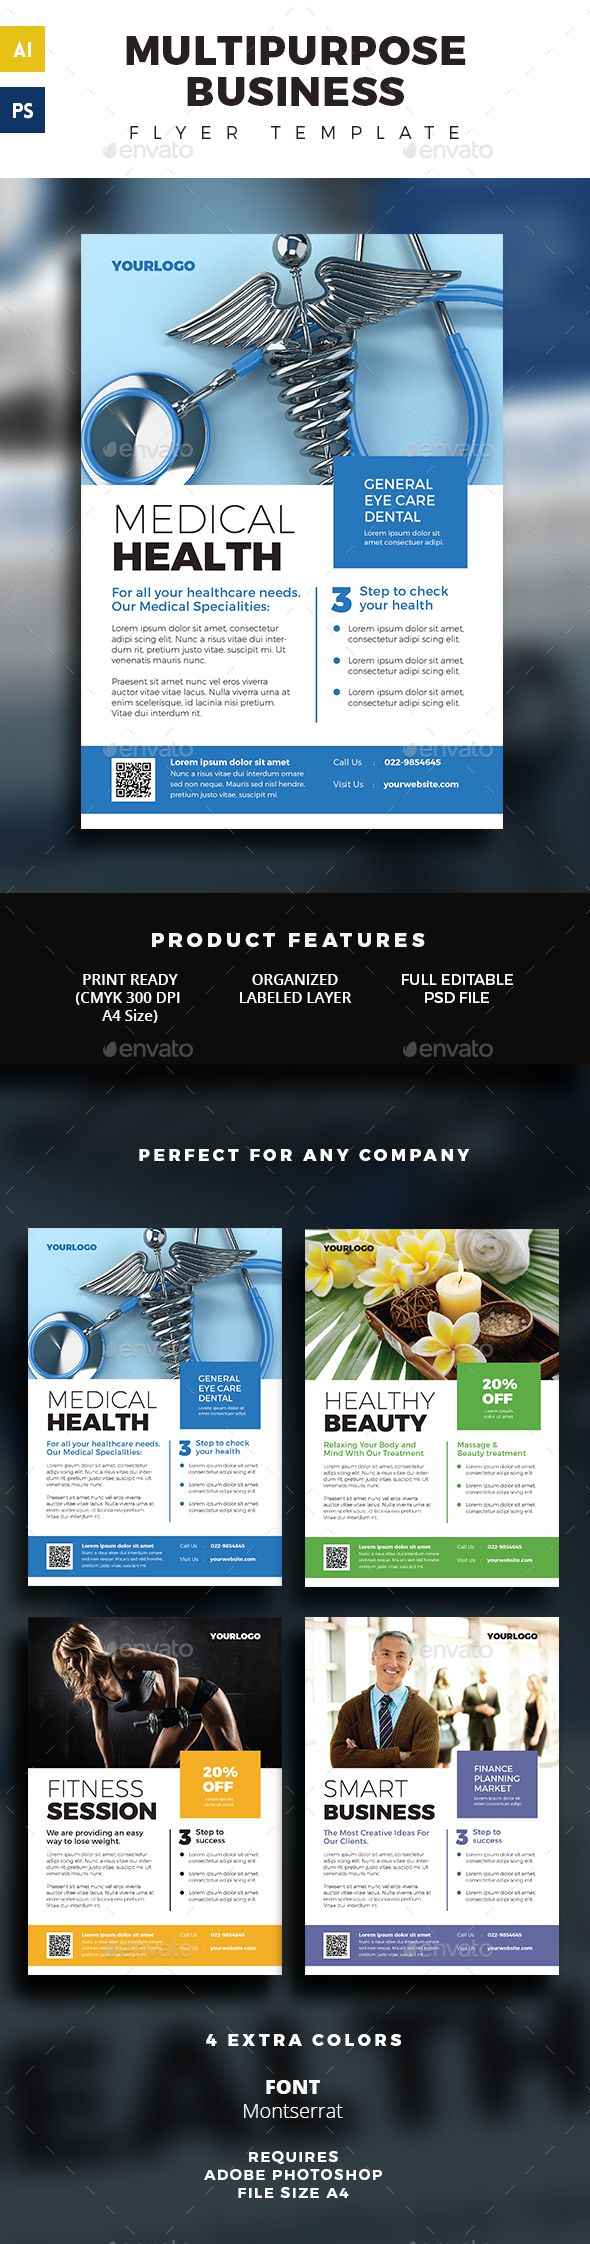 best images about brochure flyer inspiration multipurpose business flyer template